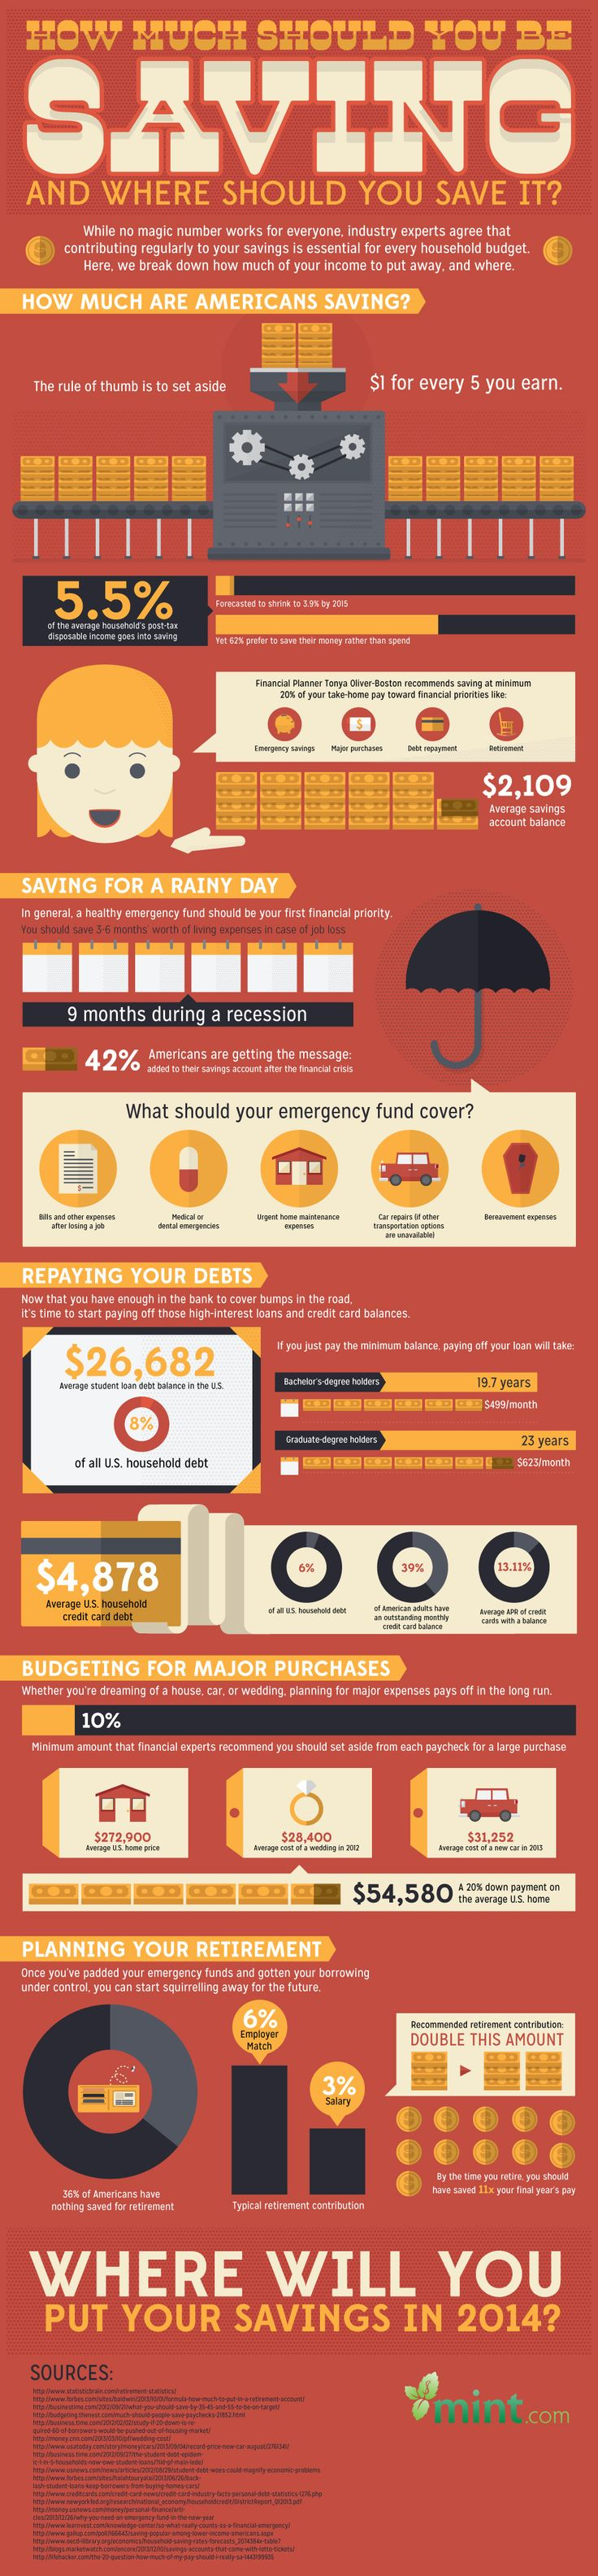 How Much Should You Be Saving? And Where Should You Save It?  #Infographic #Saving #USA